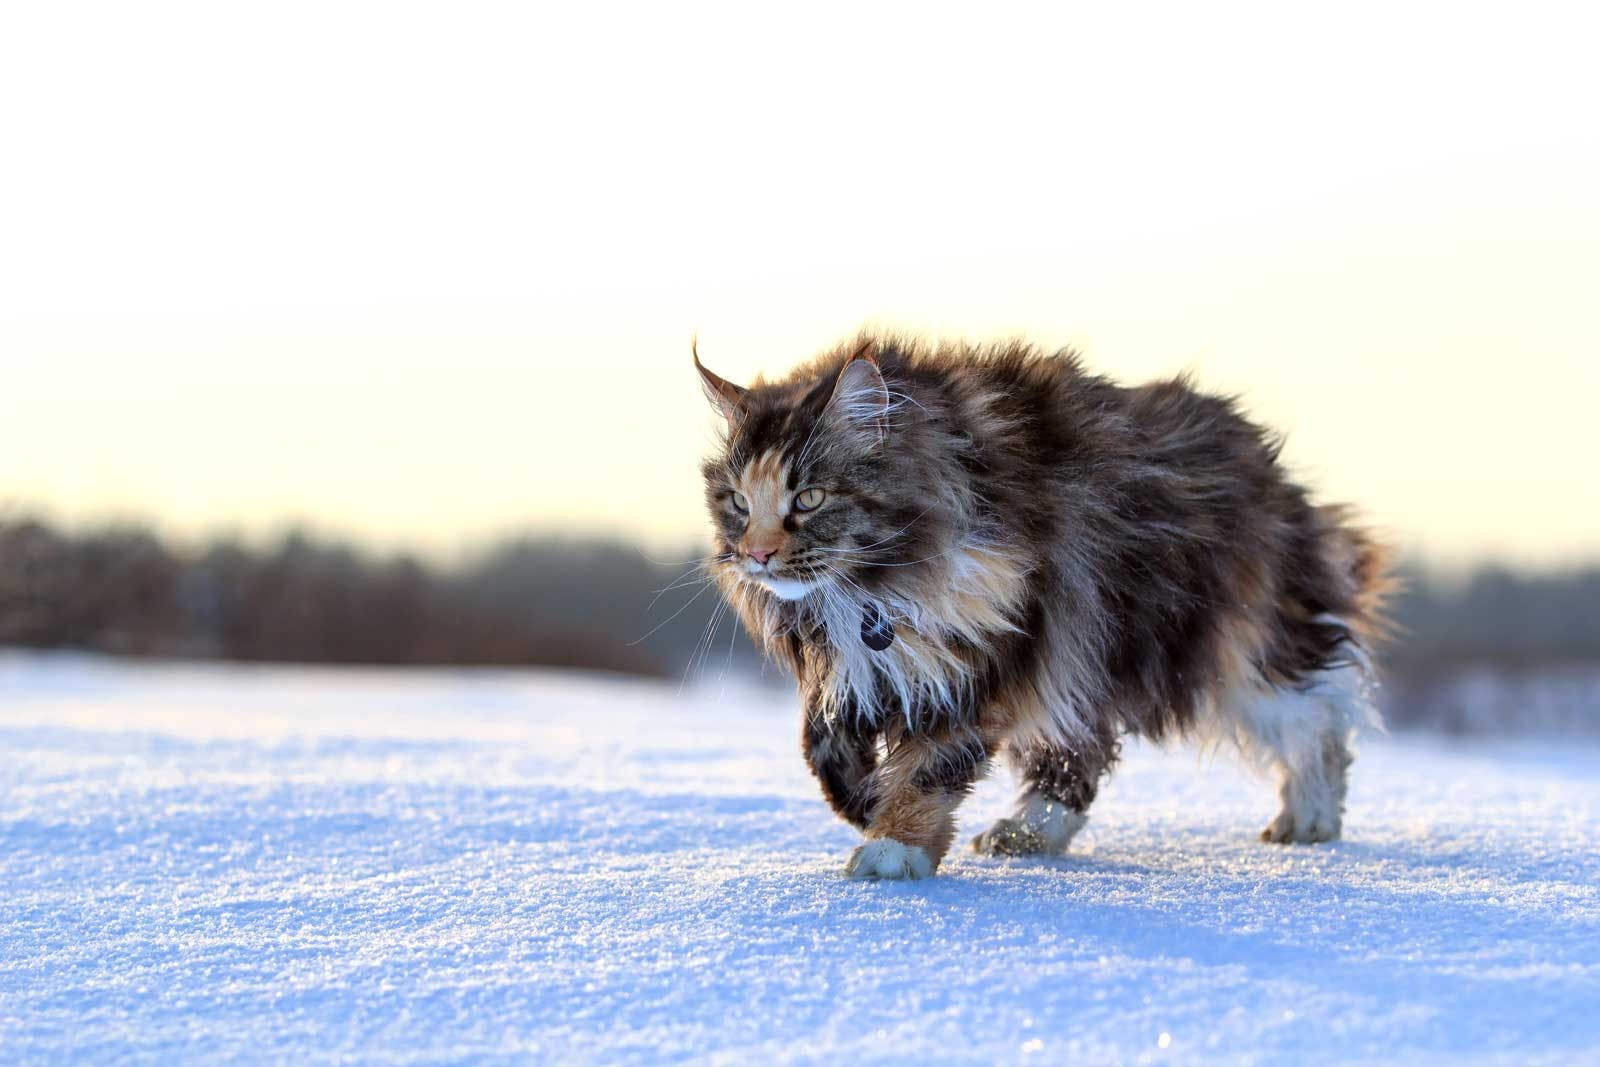 Giant Main Coon in the snow